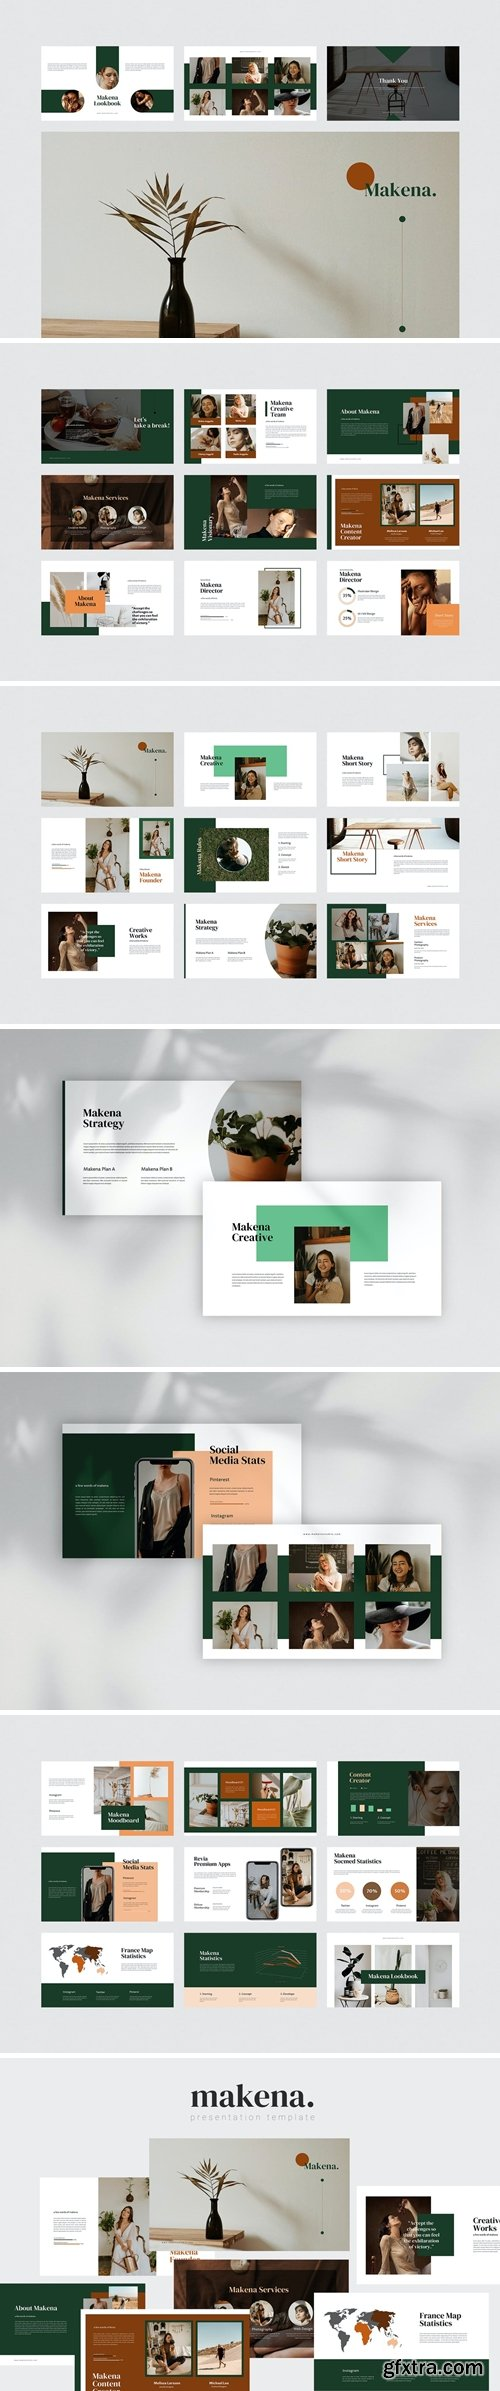 Makena - Creative Powerpoint Template